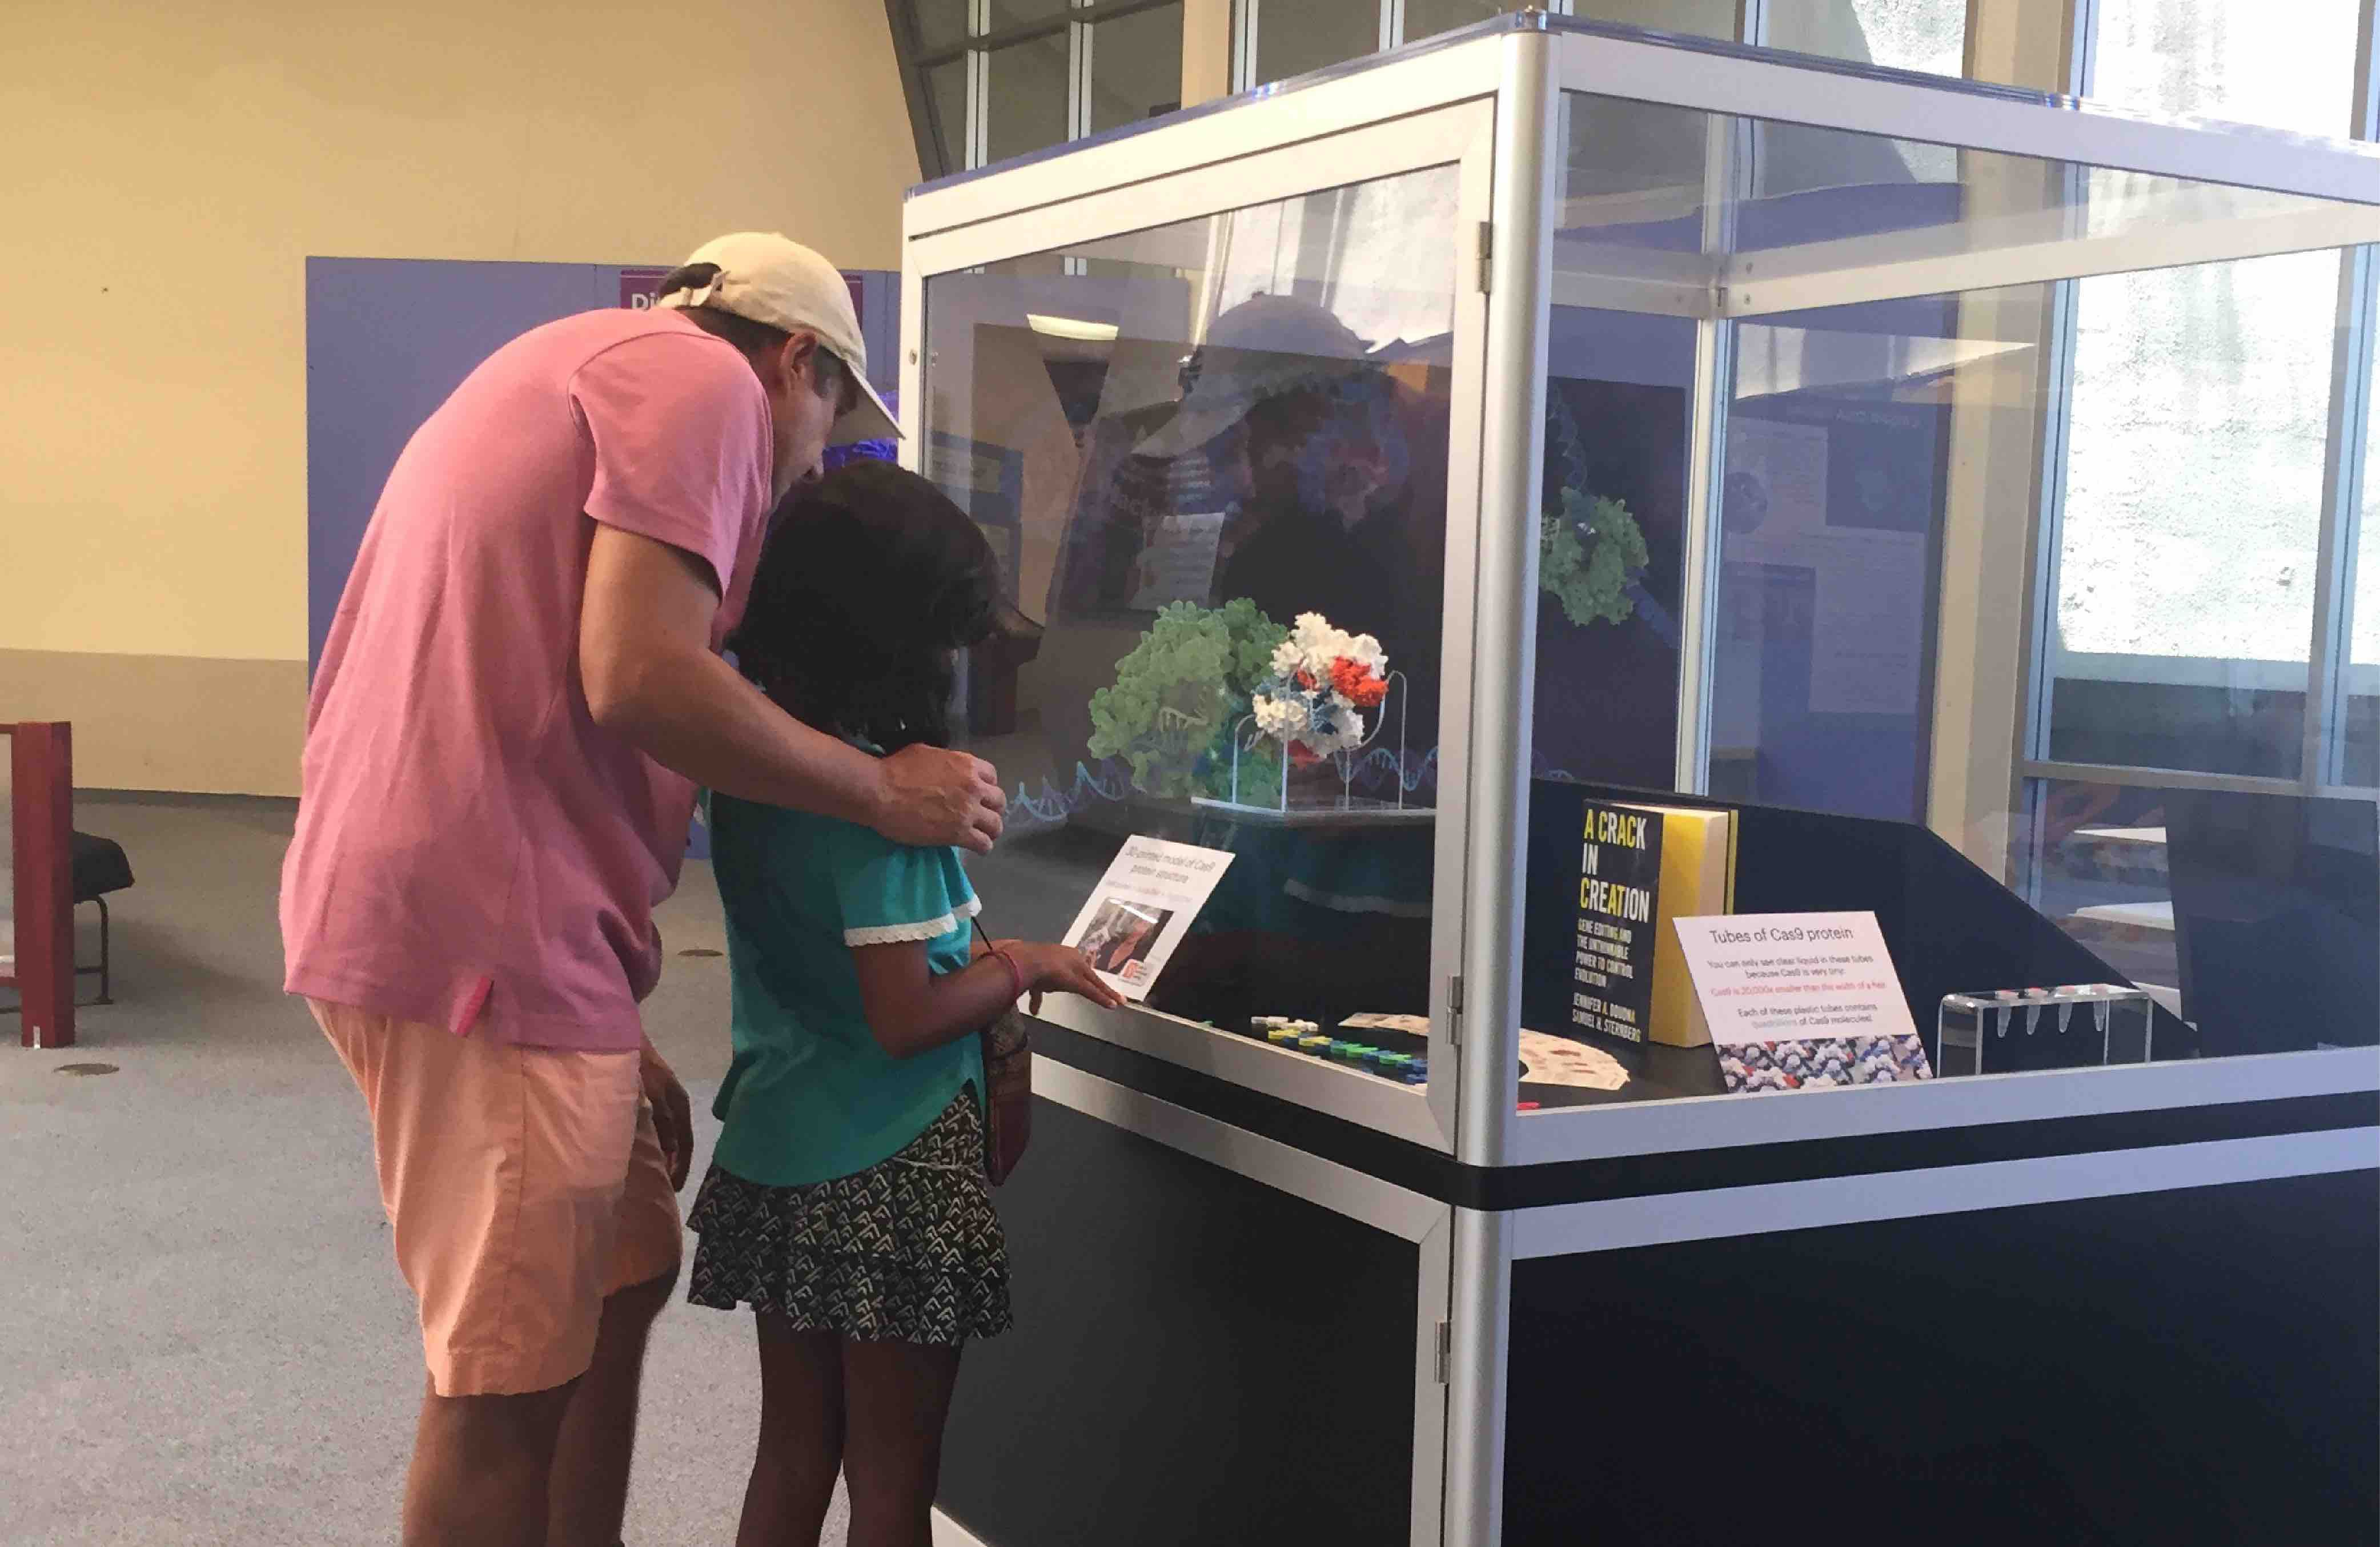 Man and young girl looking a science exhibit at the Lawrence Hall of Science